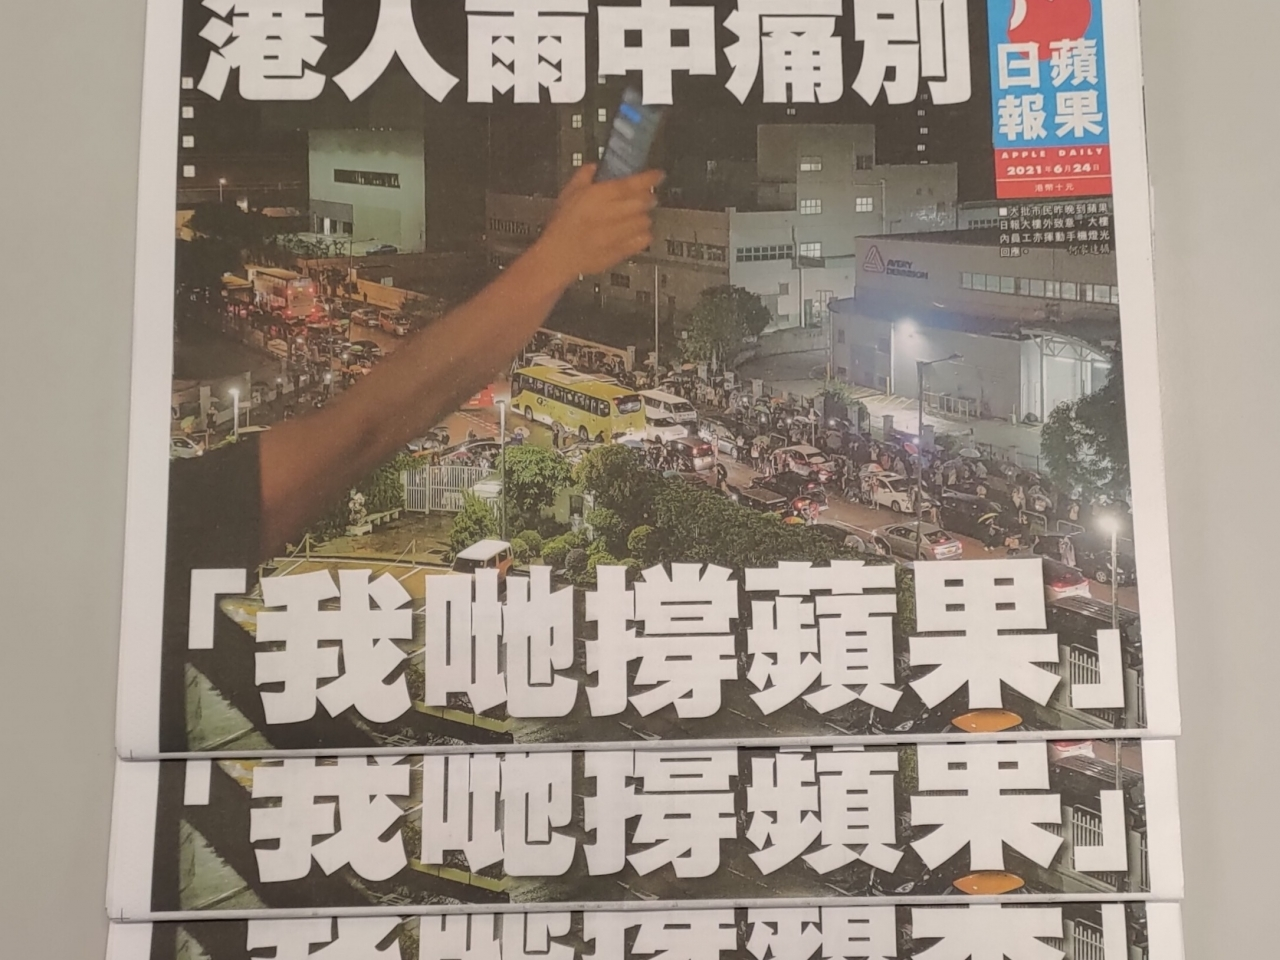 The final edition of the new defunct pro-democracy media outlet featured on its front-page an Apple Daily staff member waving a phone in response to supporters gathered outside Next Digital's building in Tseung Kwan O. Photo: RTHK